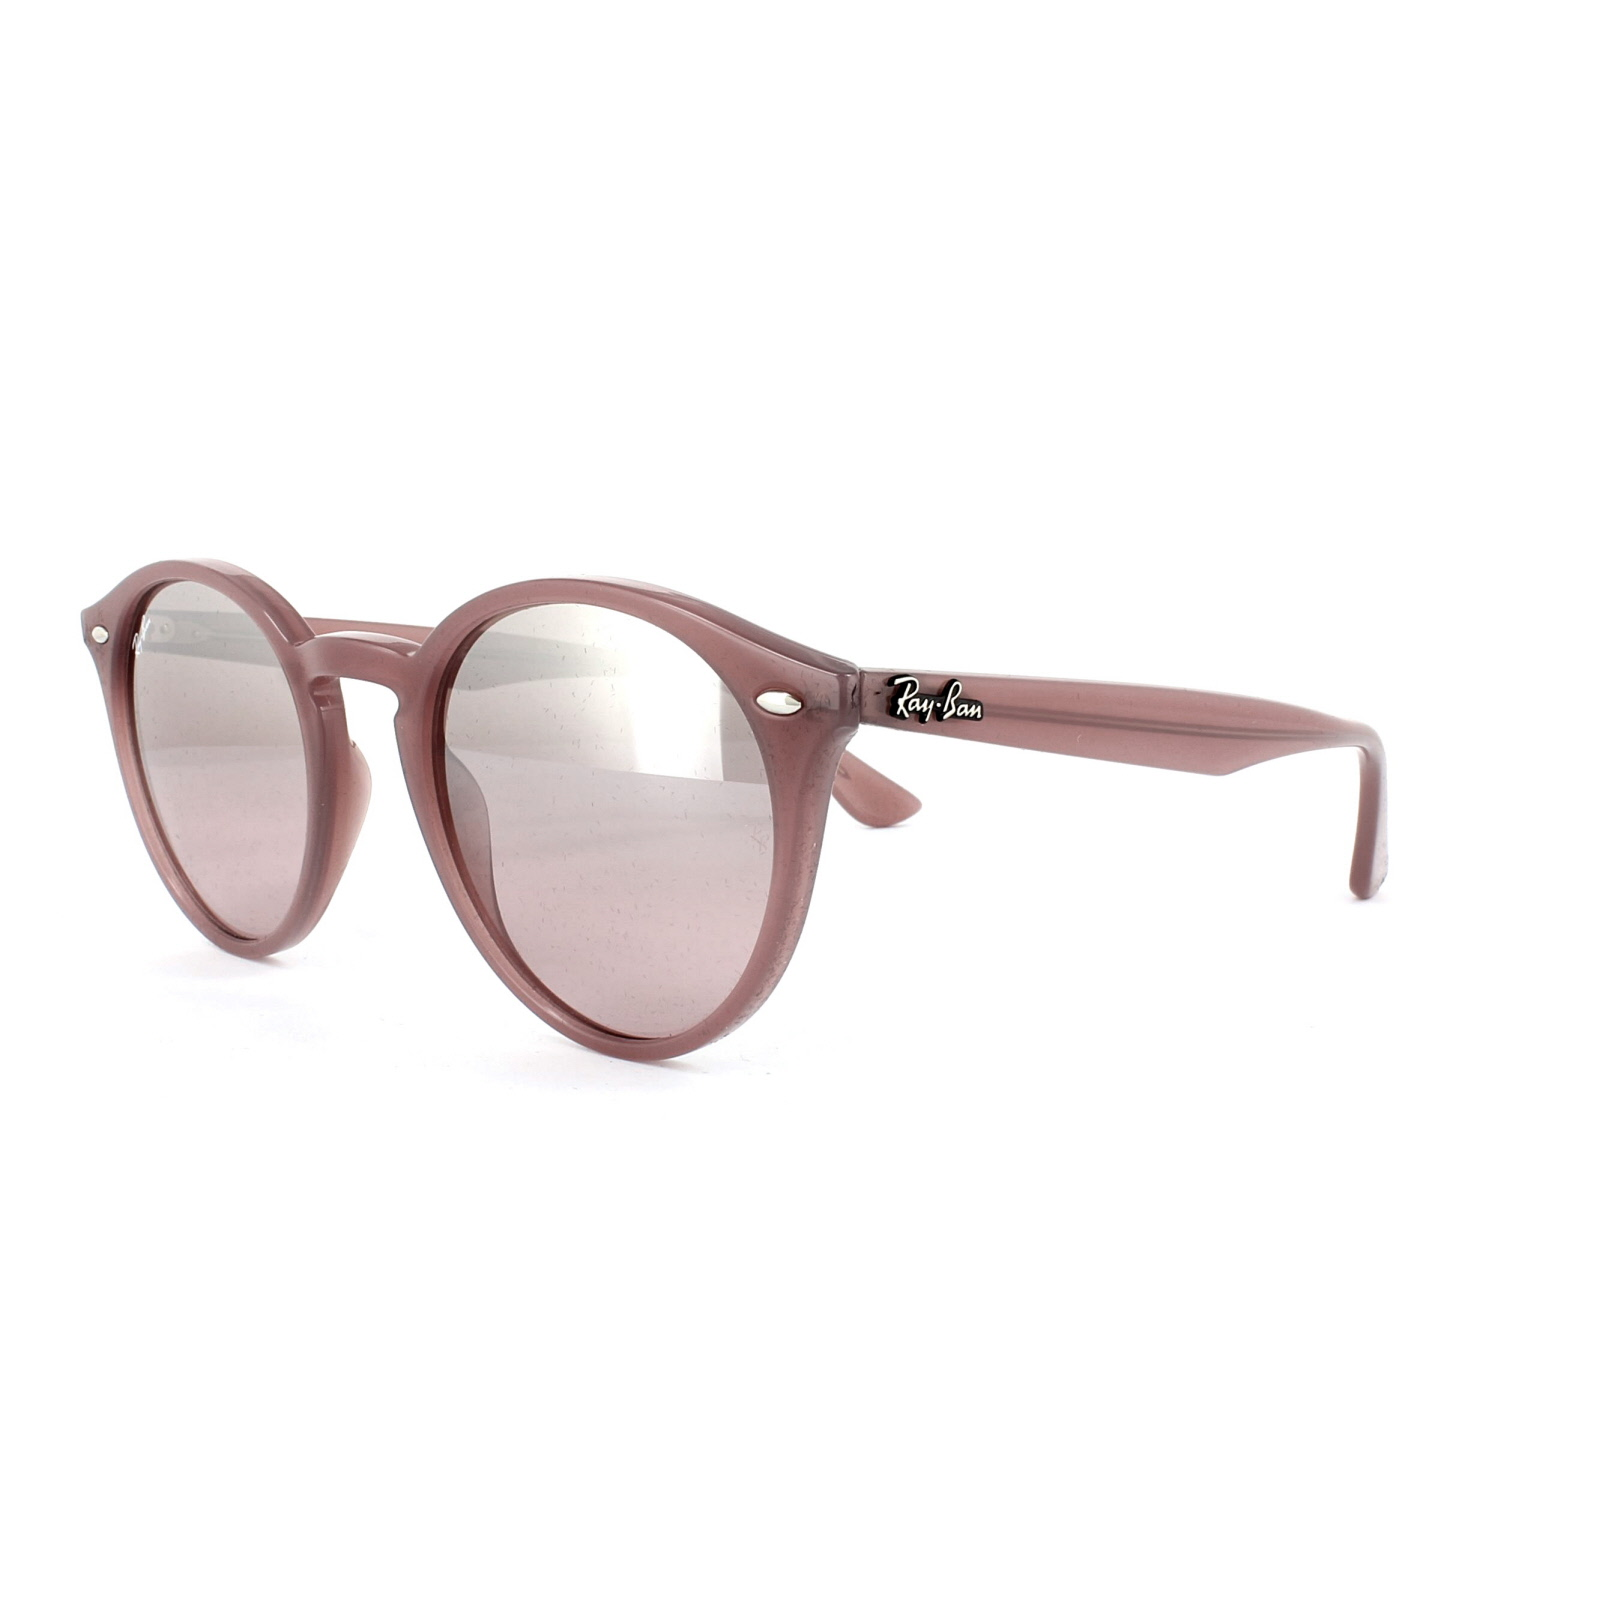 ray ban sunglasses 2180 62297e pink silver pink gradient mirror large 51mm ebay. Black Bedroom Furniture Sets. Home Design Ideas